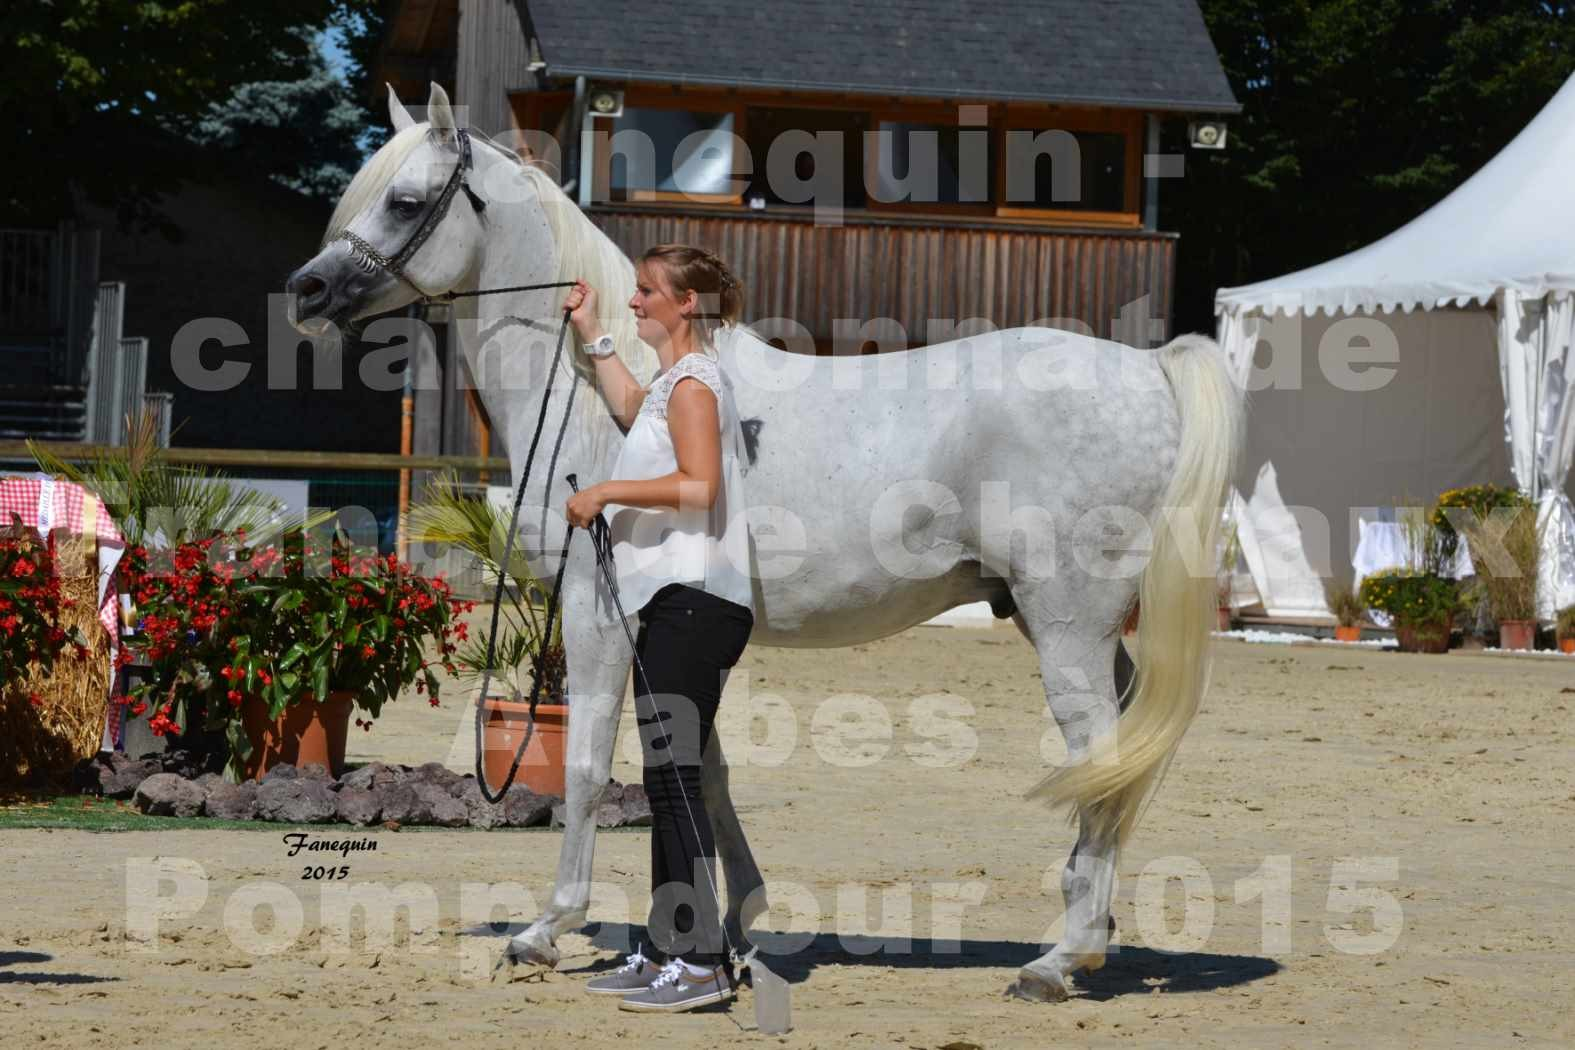 Championnat de FRANCE du cheval ARABE à POMPADOUR 2015 - Classes PROFESSIONNELS - HAADJA - 5